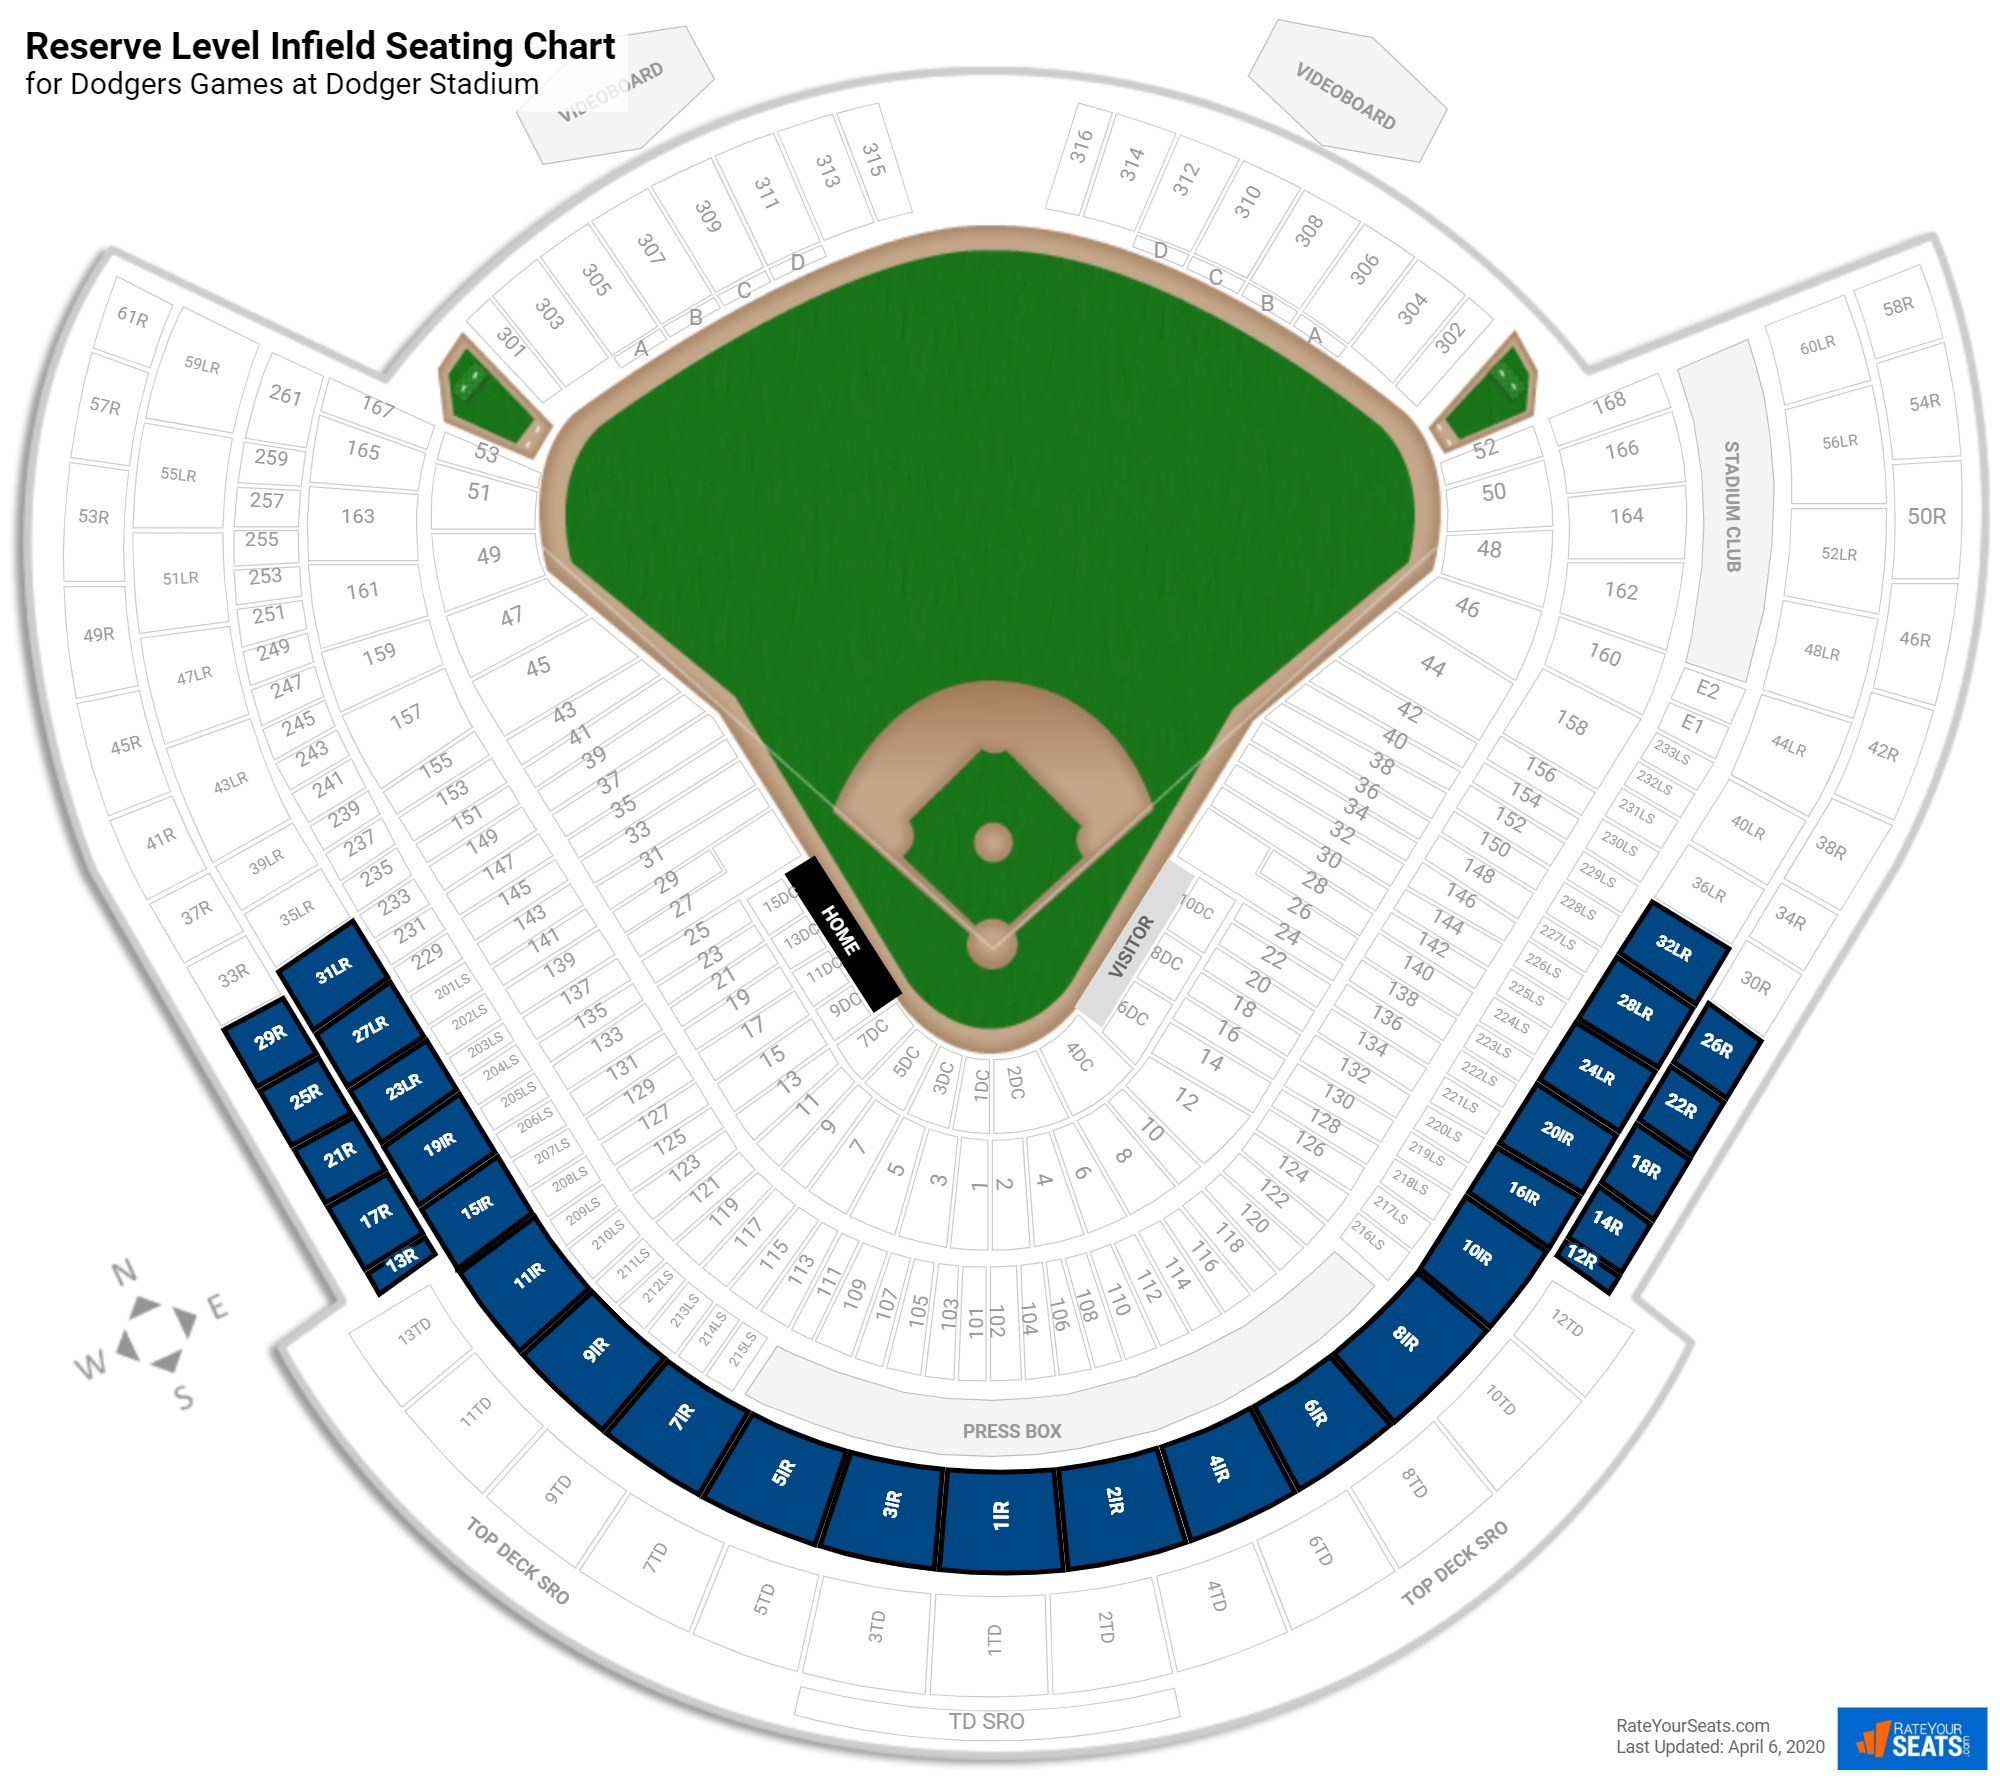 Dodger Stadium Reserve Level Infield seating chart